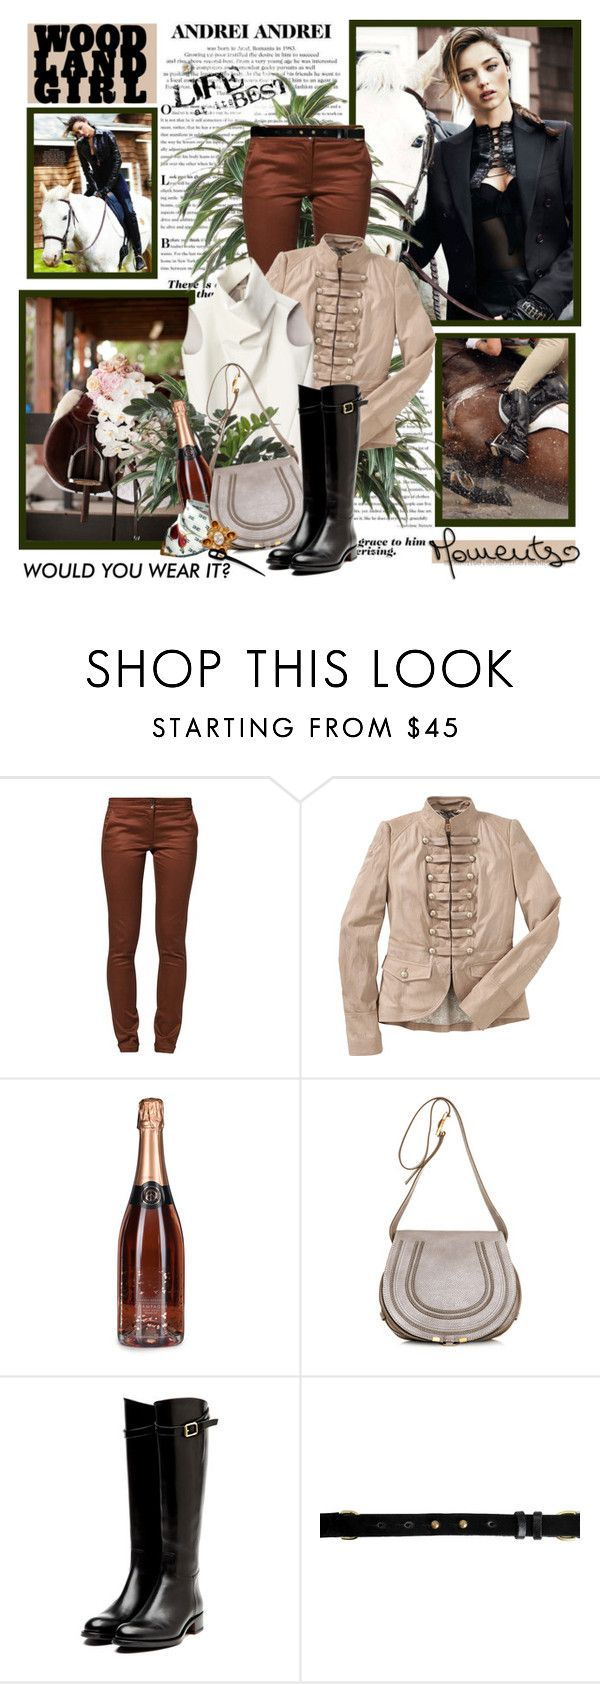 """Woodland girl"" by helleka ❤ liked on Polyvore featuring Kerr®, Kookaï, BOSS Orange, CÉLINE, Chloé, Rupert Sanderson, rag & bone, Hermès, riding boots and equestrian"